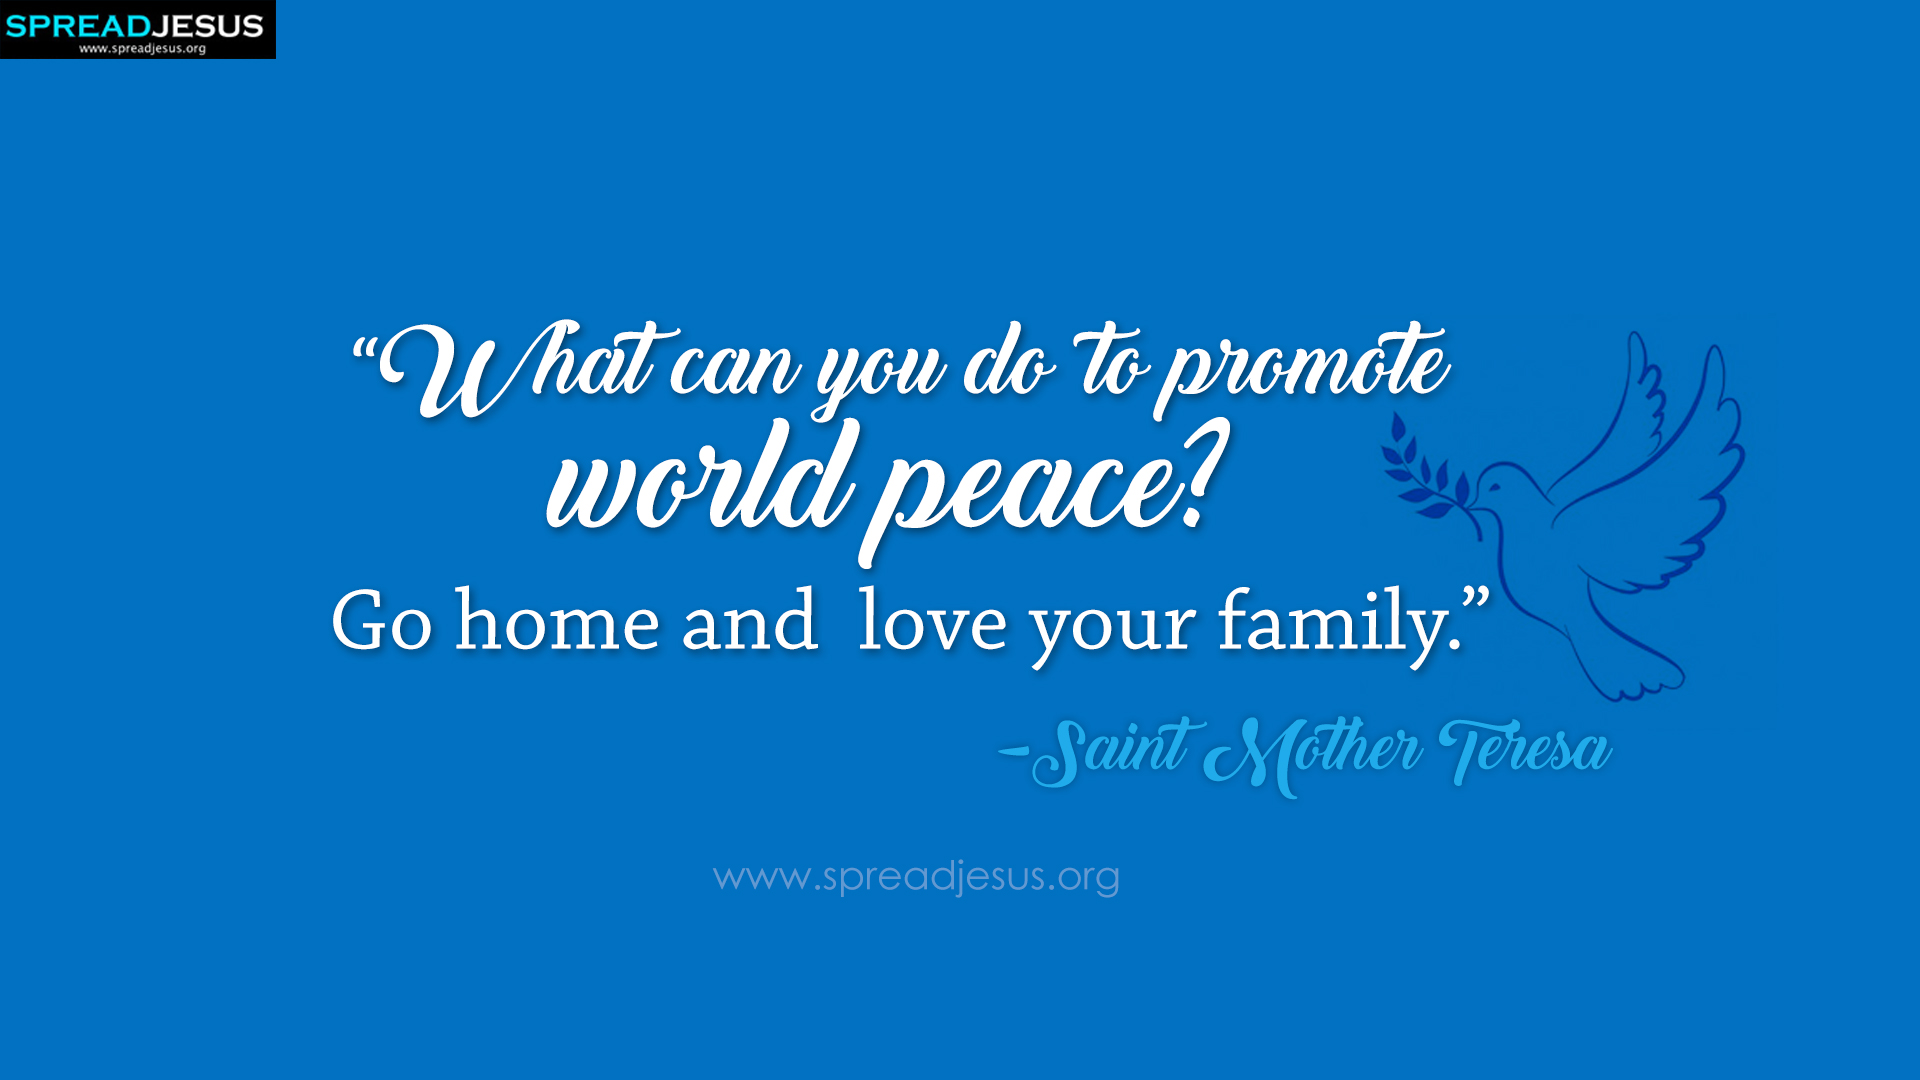 Saint Mother Teresa Quotes Hd-wallpaper Promote World - Short Catholic Quotes On Family - HD Wallpaper